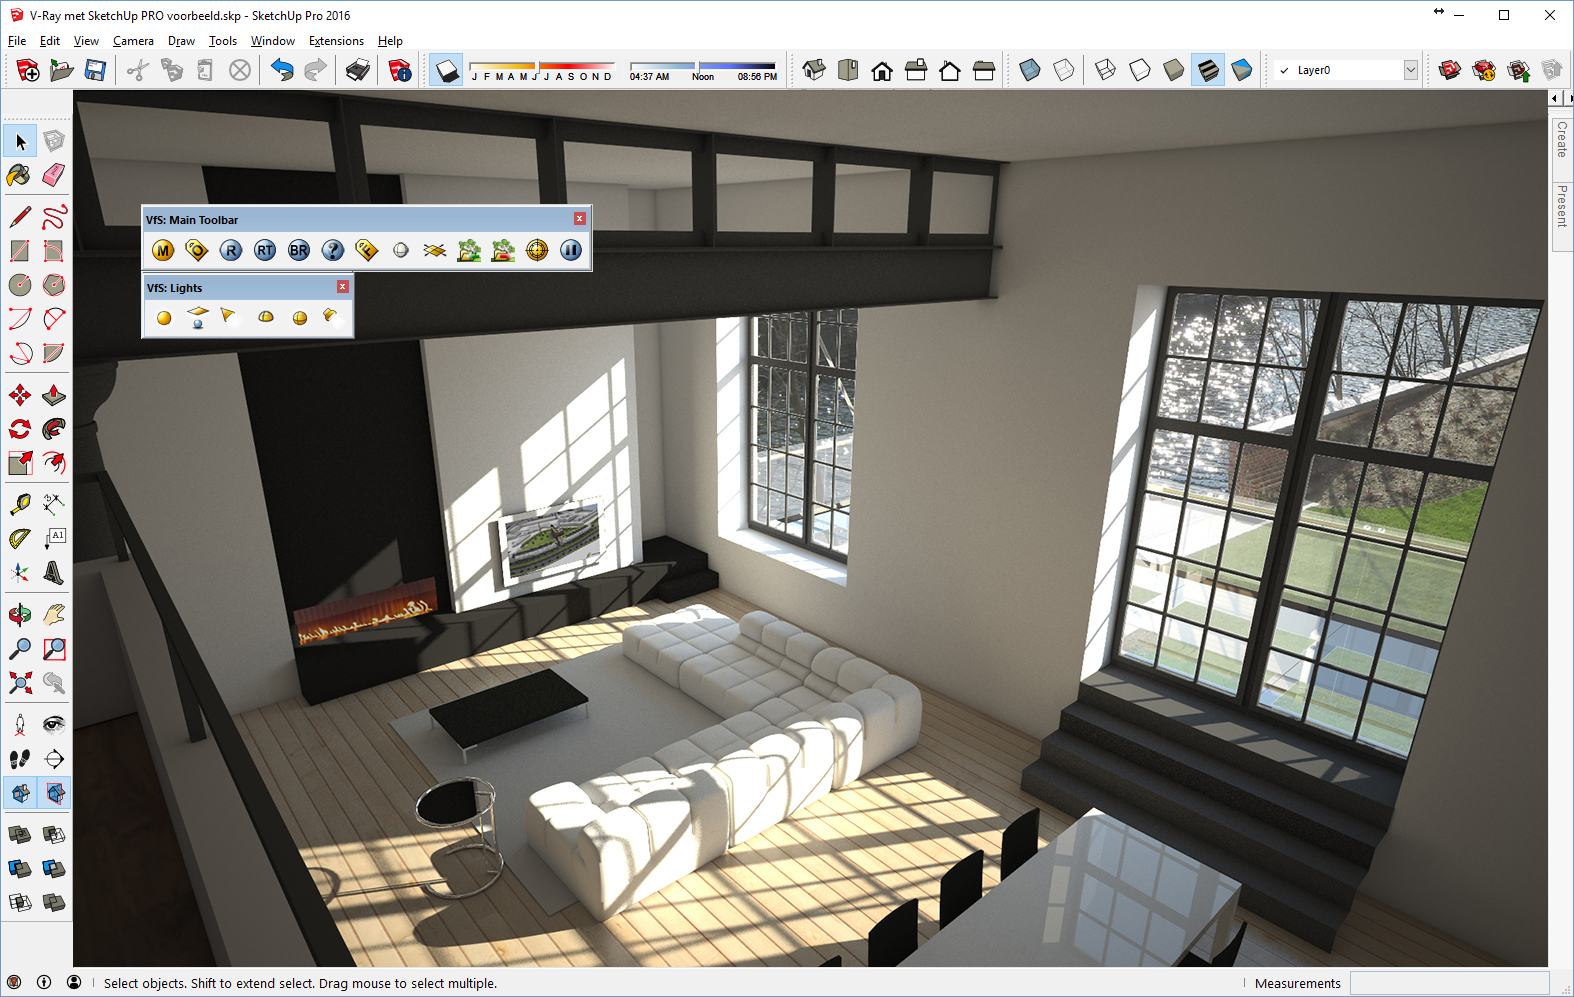 c3a cursus v ray for sketchup pro c3a